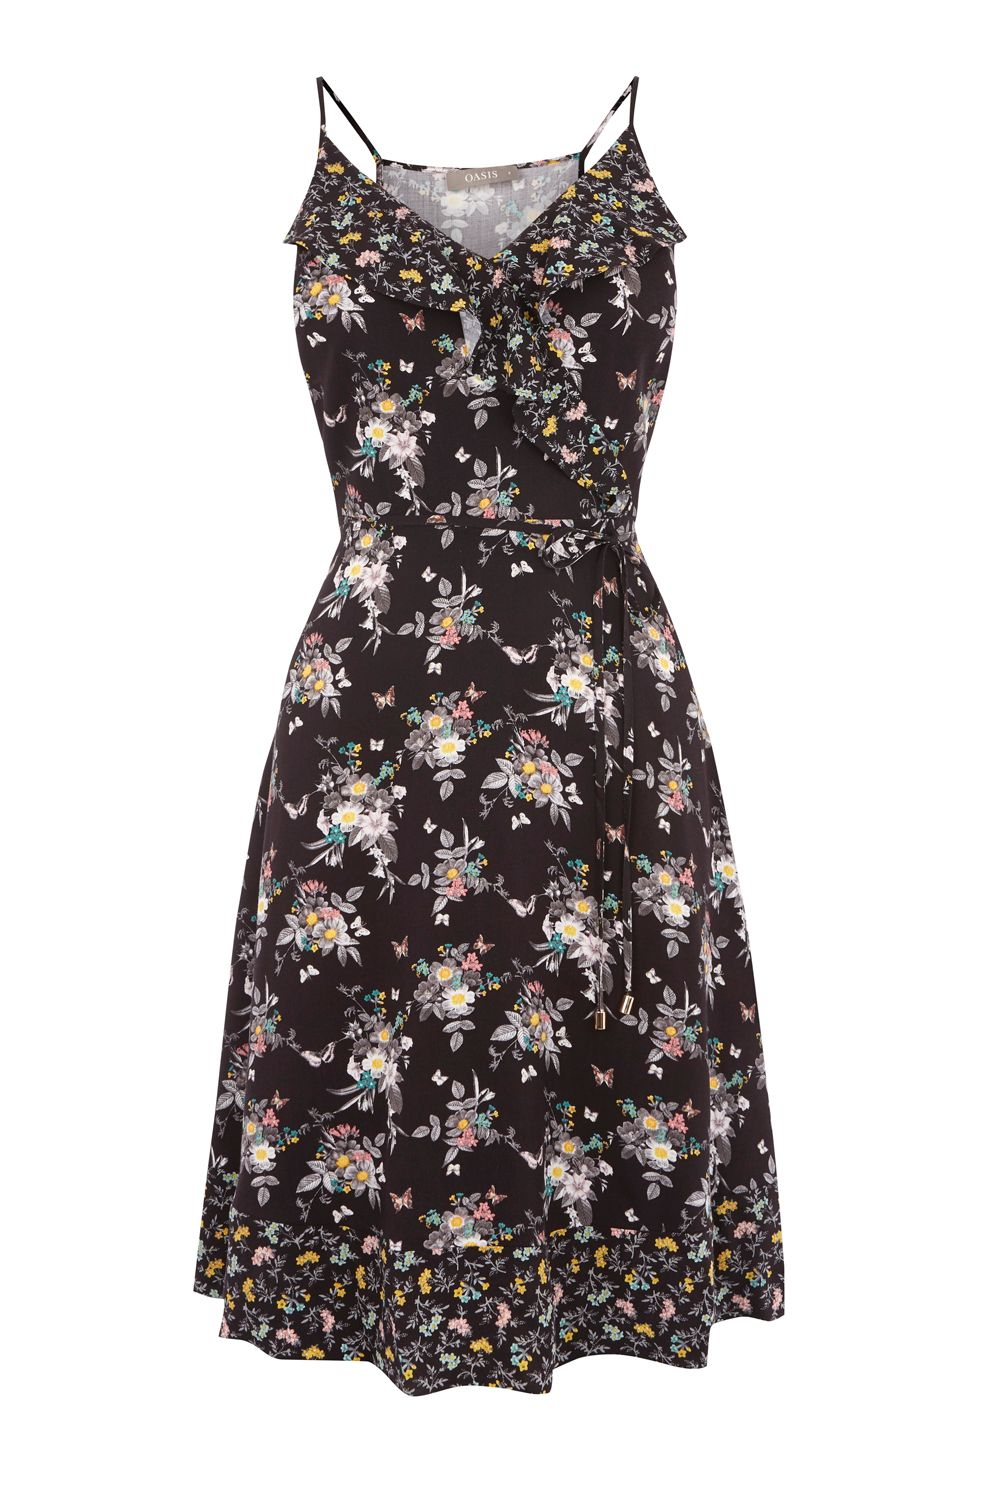 Oasis LONG PATCHED DITSY DRESS, Multi-Coloured